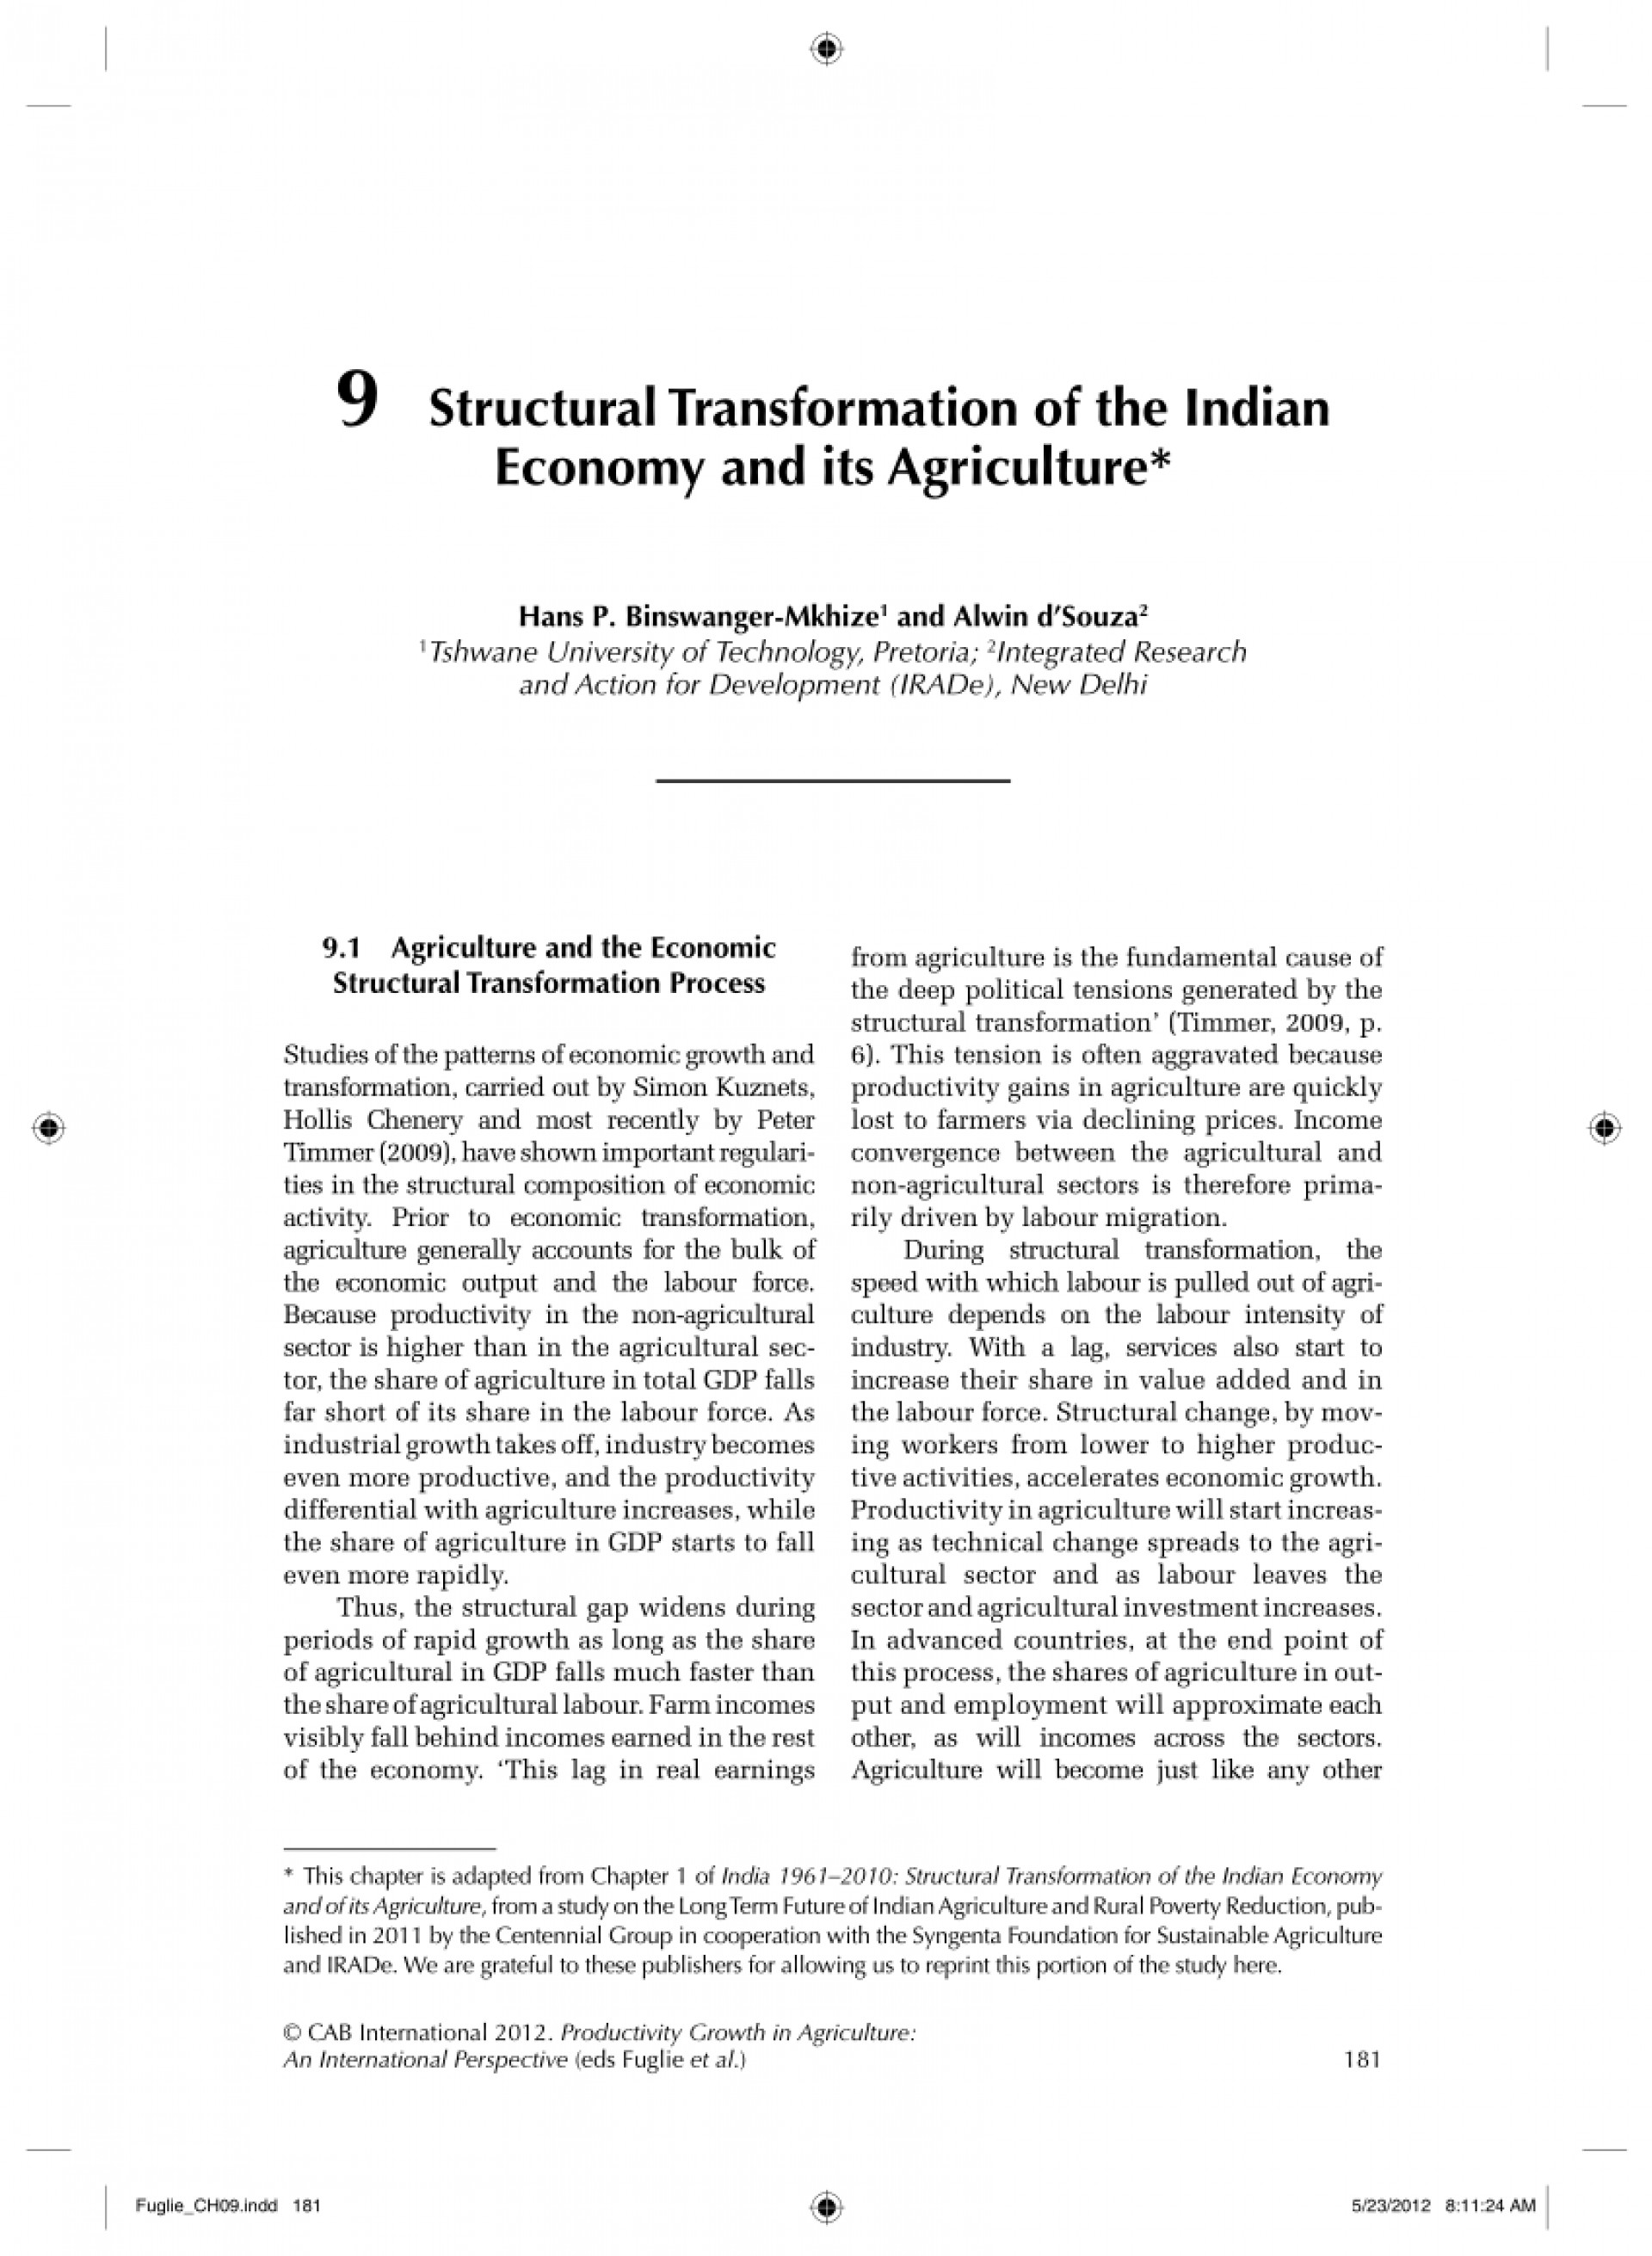 005 Largepreview Research Paper Indian Economic Breathtaking Growth 1920